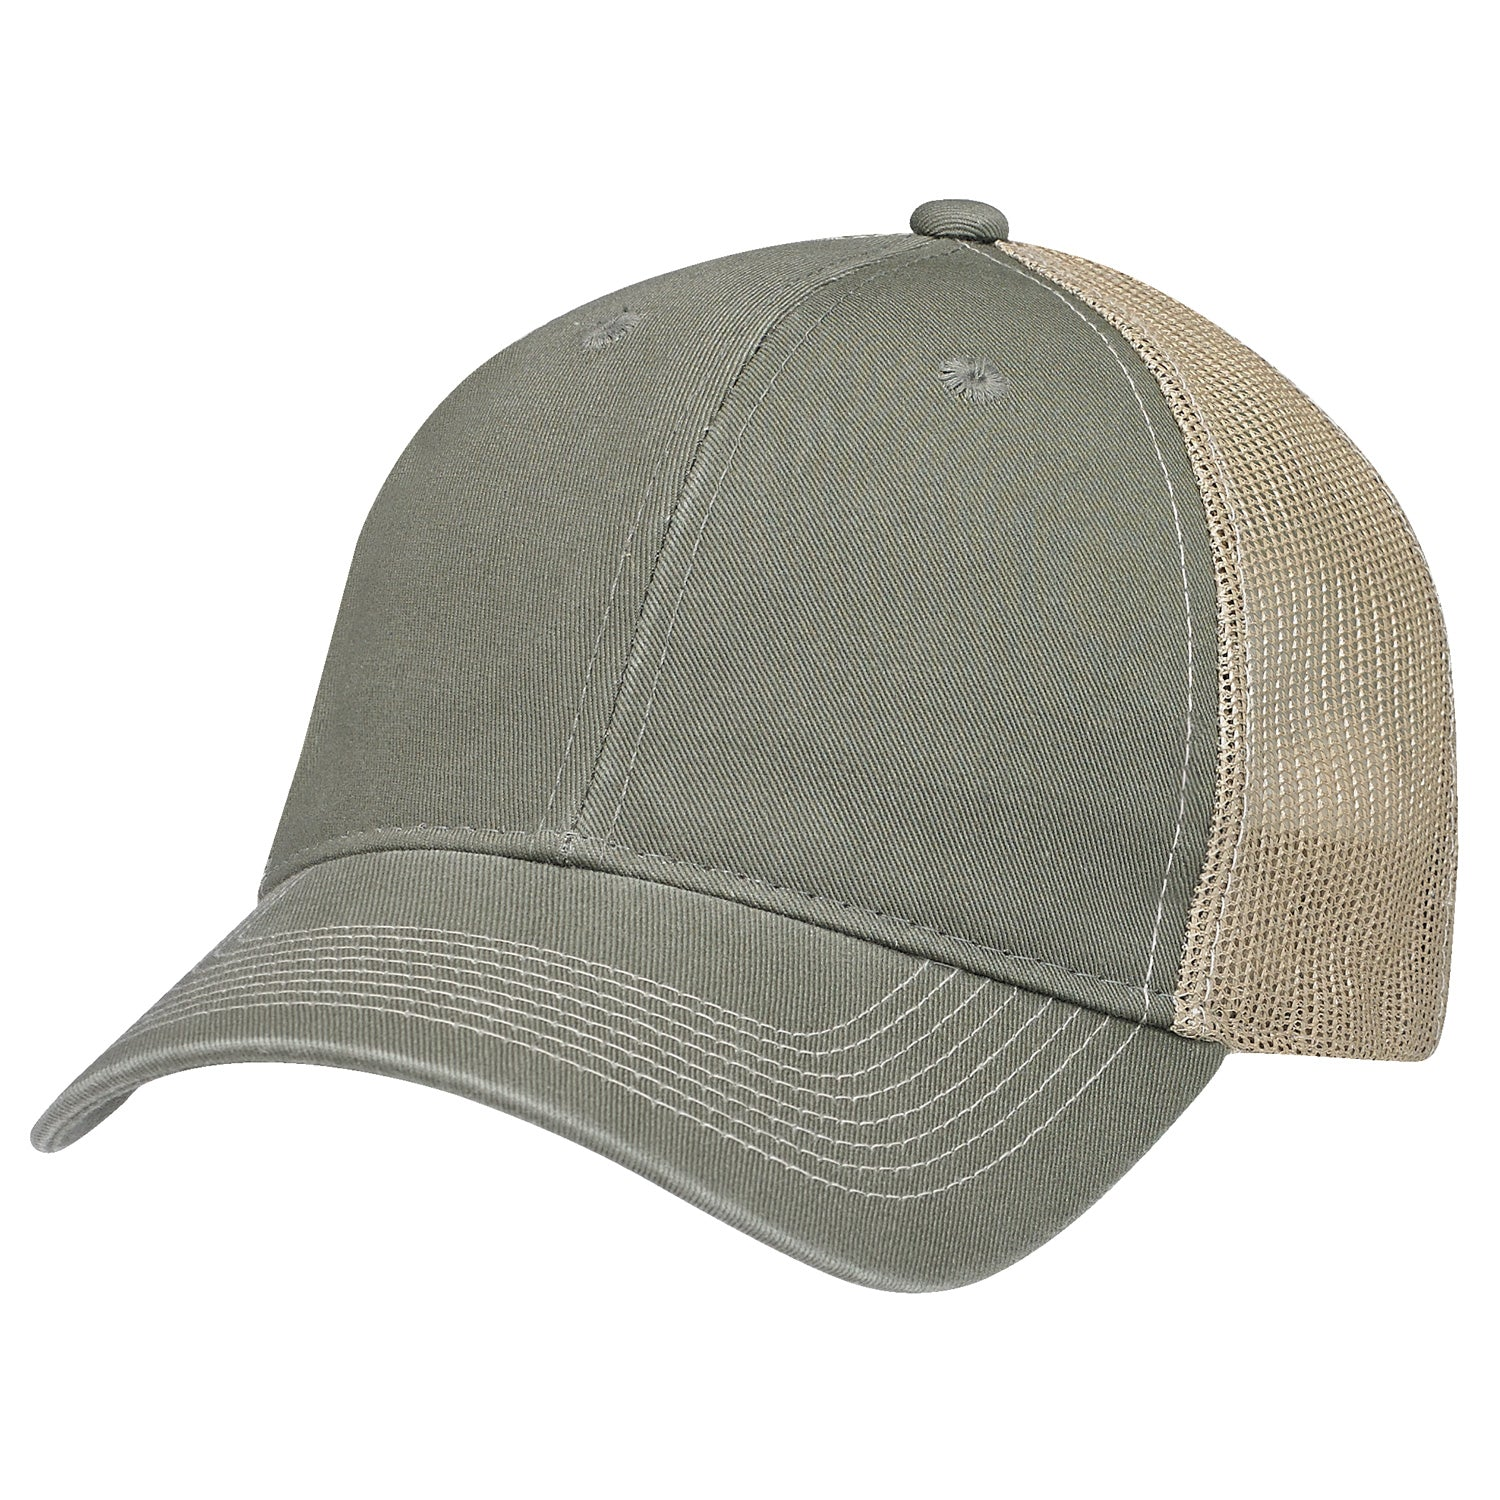 AJM ENZYME WASHED DELUXE CHINO TWILL/SOFT NYLON MESH HAT